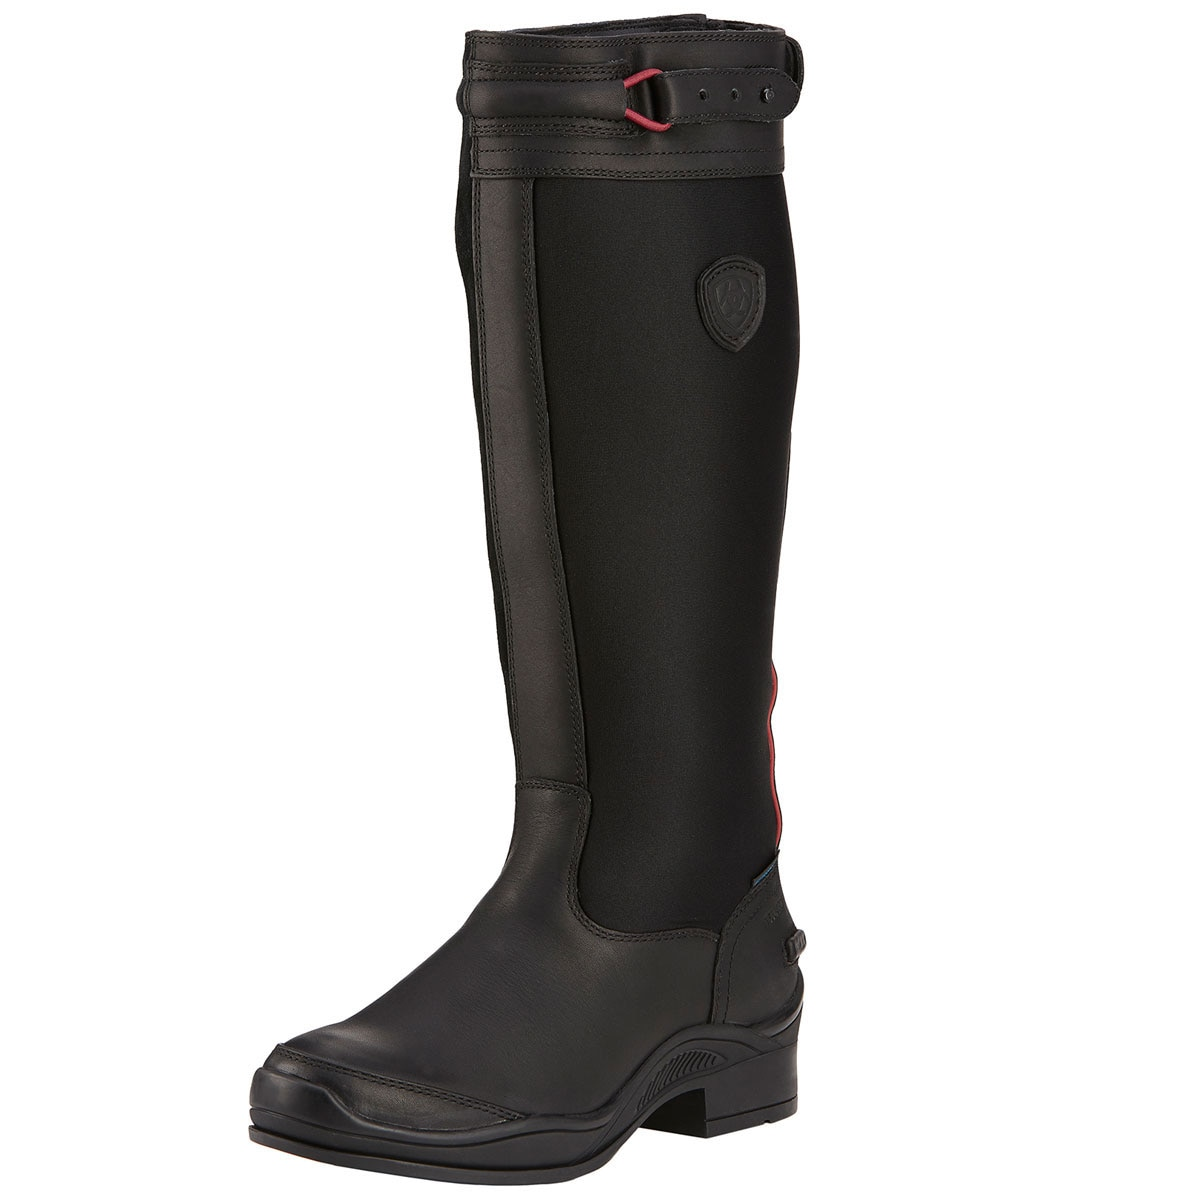 221c07804974 Ariat Extreme Tall H20 Insulated Boot